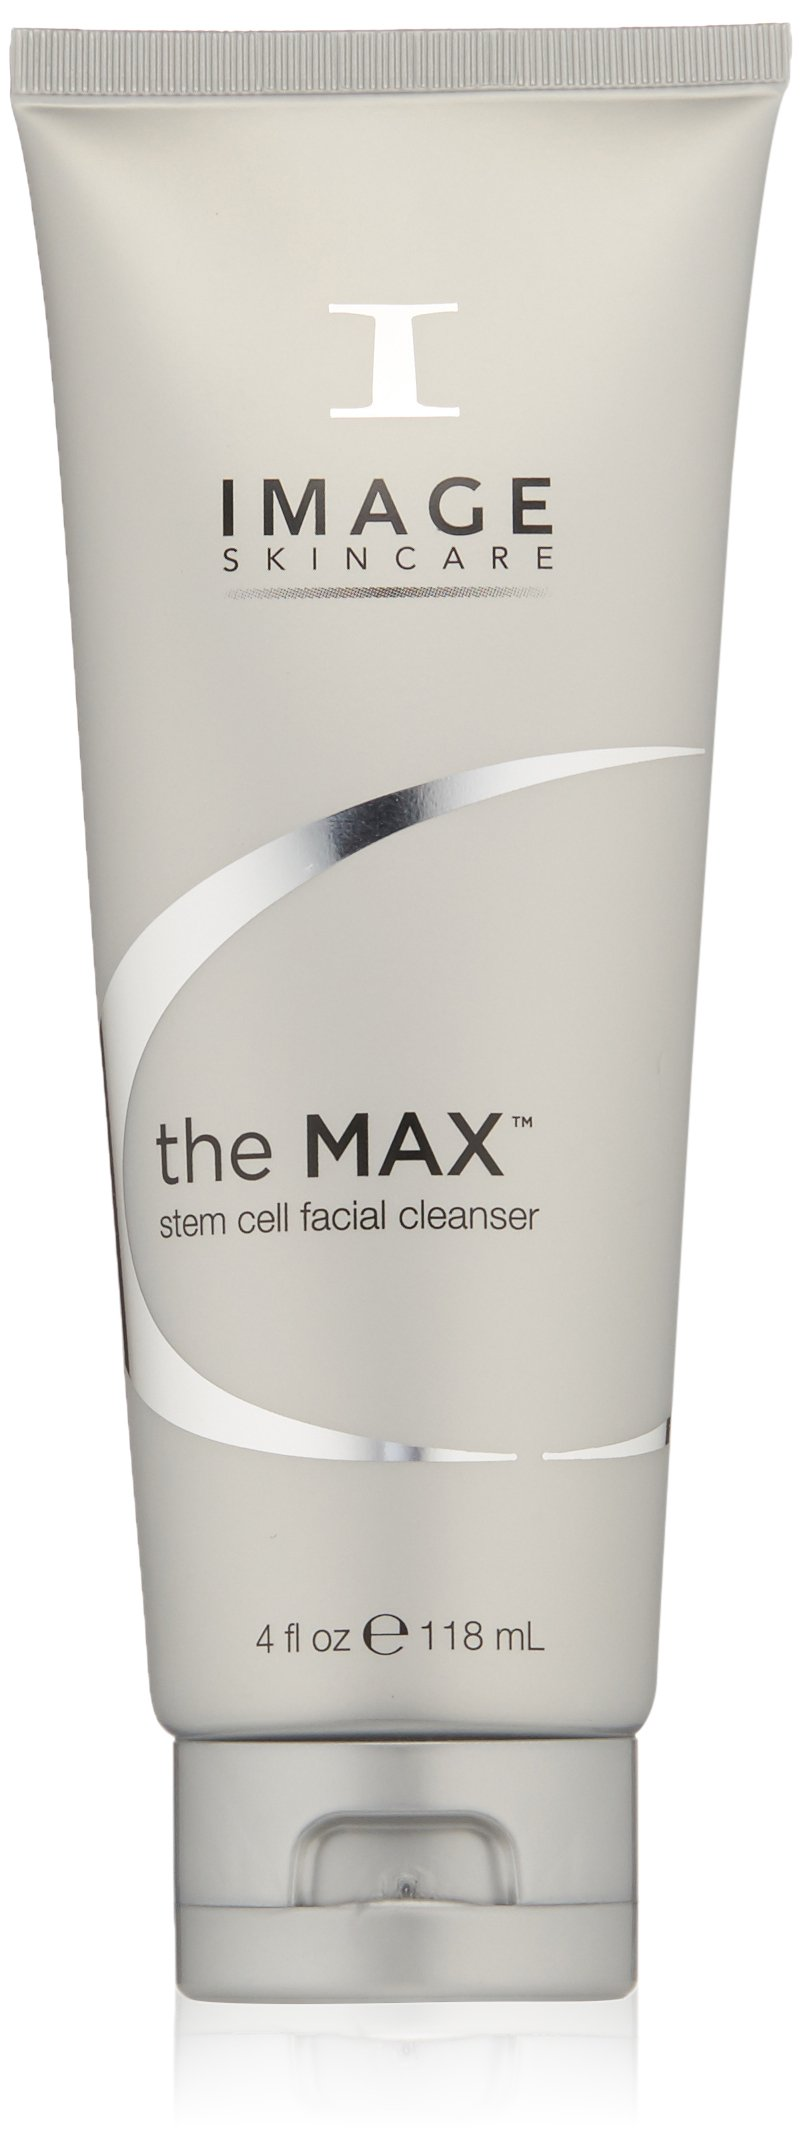 Image Skincare The Max Stem Cell Facial Cleanser, 4.0 Fl Oz by Image Skincare